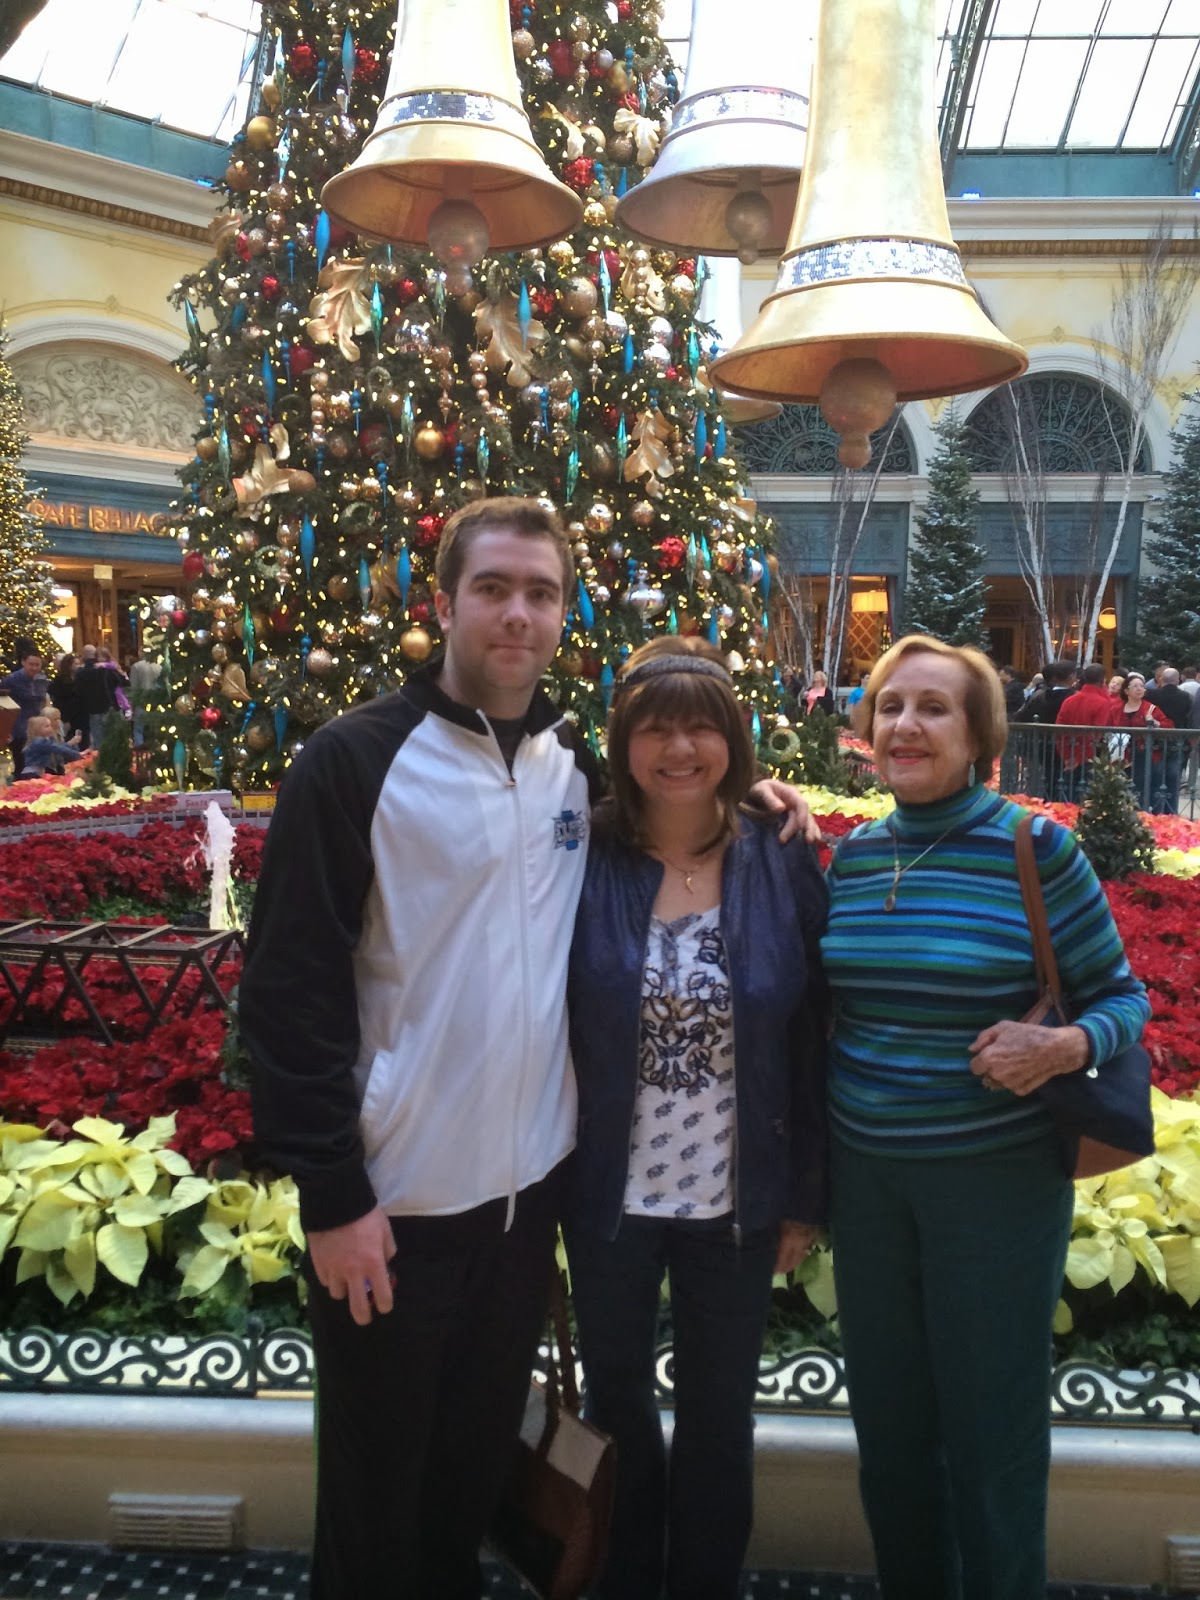 the first group of photos is from december 26th with my family during the crowded daytime hours of the bellagio conservatory - Las Vegas Christmas 2014